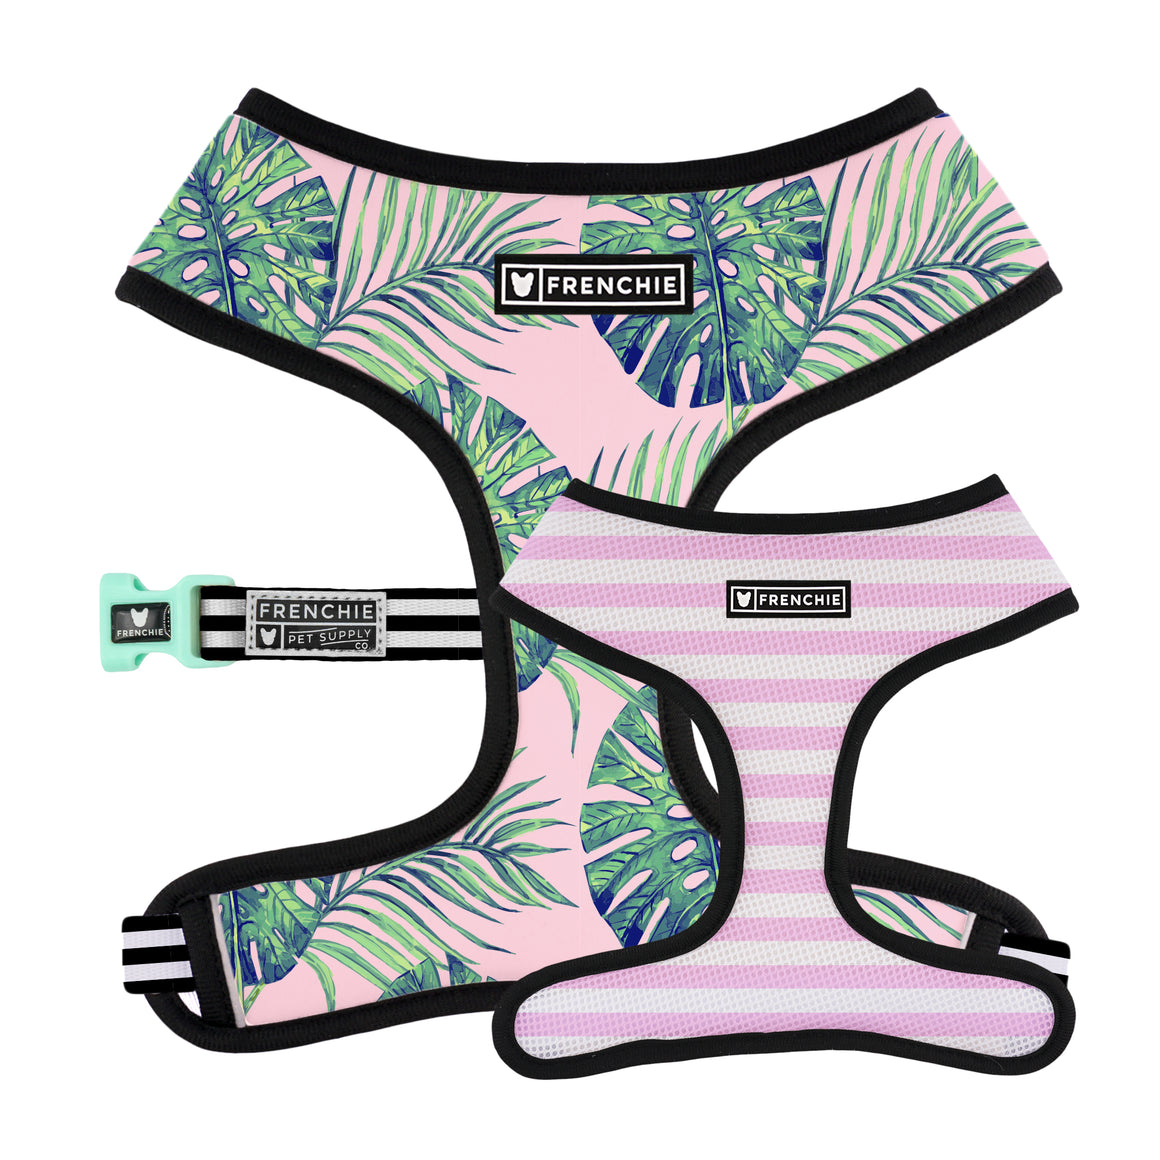 Frenchie Duo Reversible Harness - Pink Beverly Palms - Frenchie Bulldog - Shop Harnesses for French Bulldogs - Shop French Bulldog Harness - Harnesses for Pugs